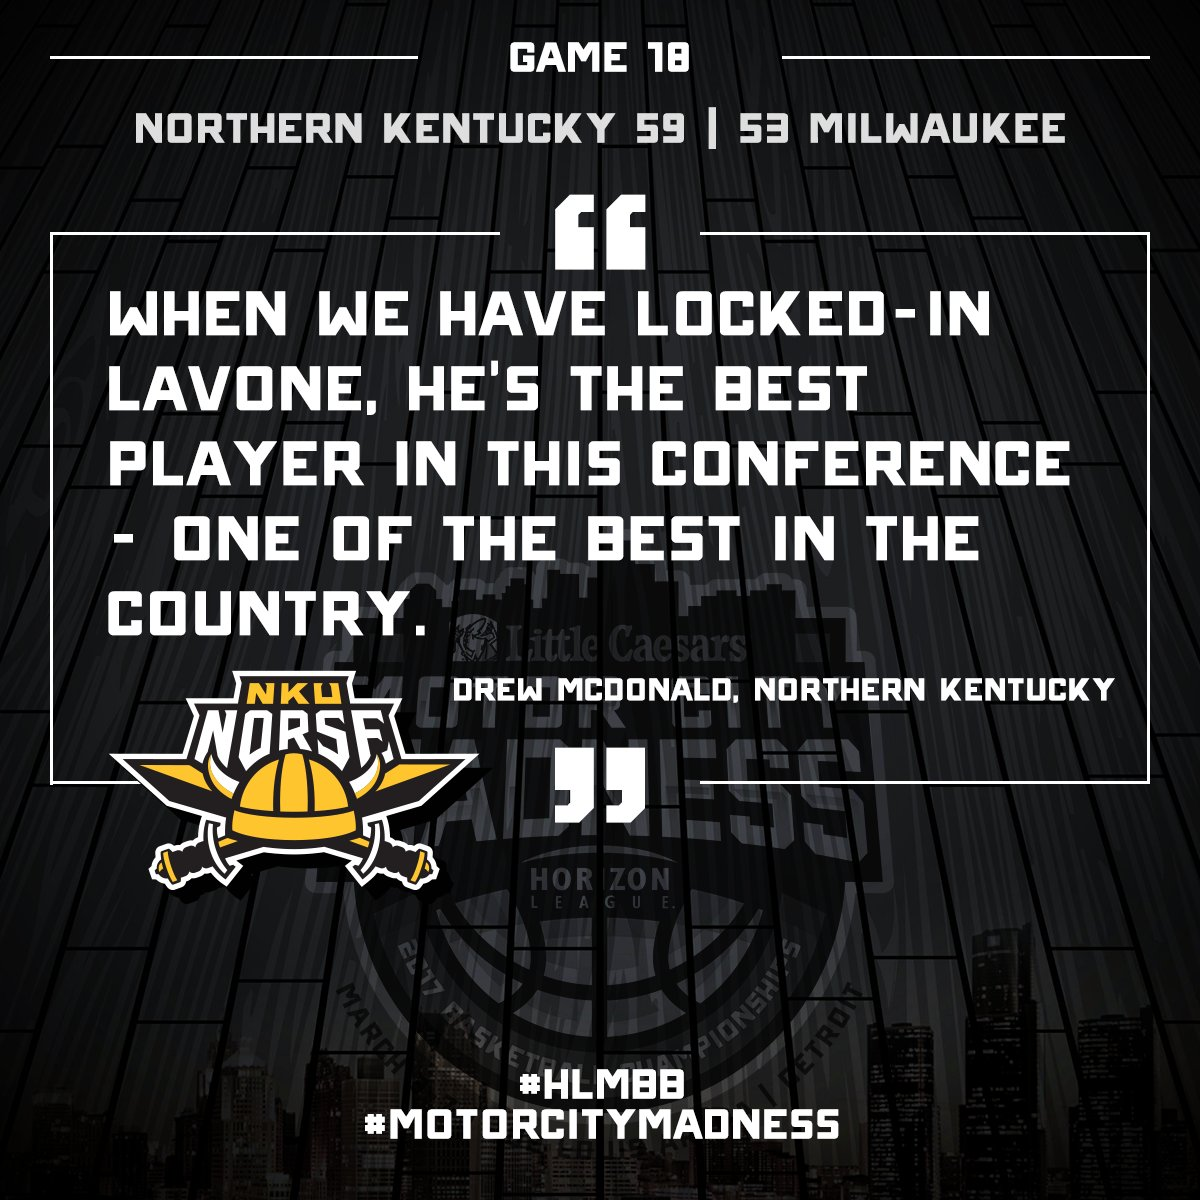 He was locked in tonight. Congratulations to the tournament MVP and the @NKUNorseMBB #HLMBB #MotorCityMadness Champions! https://t.co/M5IU0PP9Vu